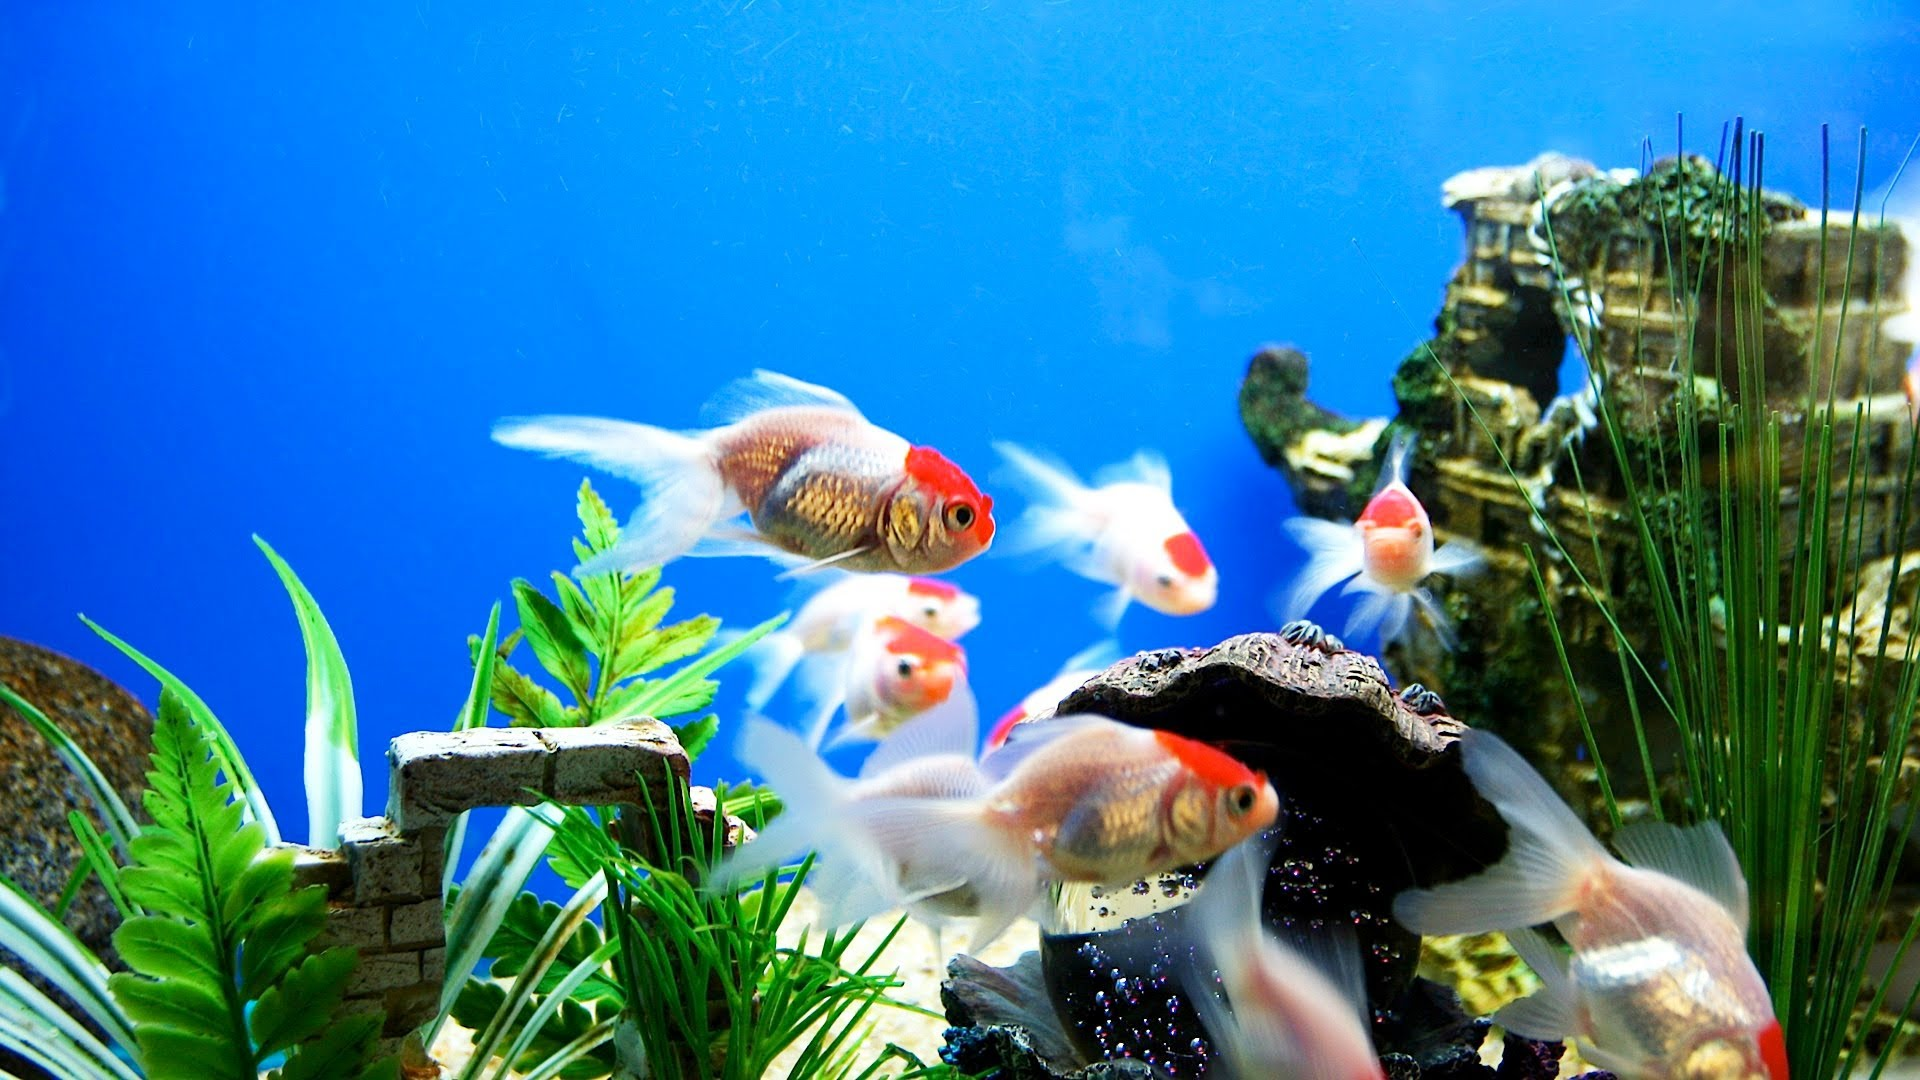 What to Look For in a Good Fish Store